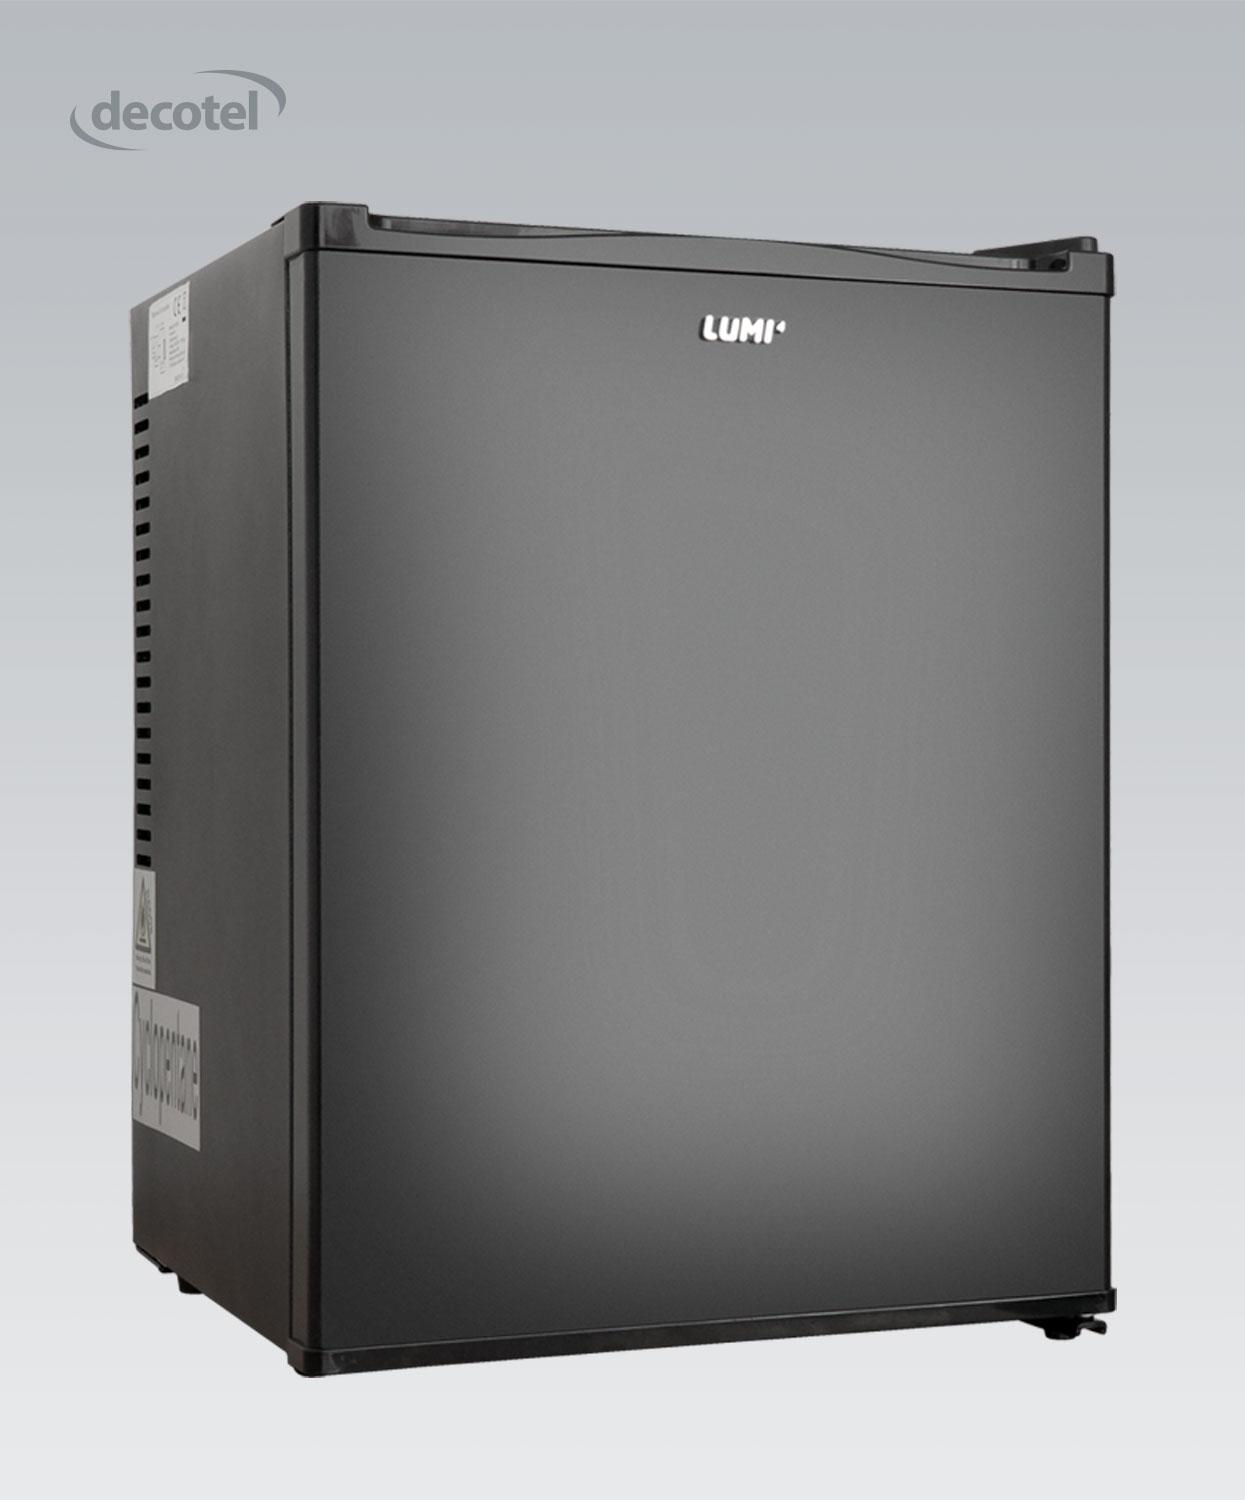 Lumi 40L Mini Bar Solid Door